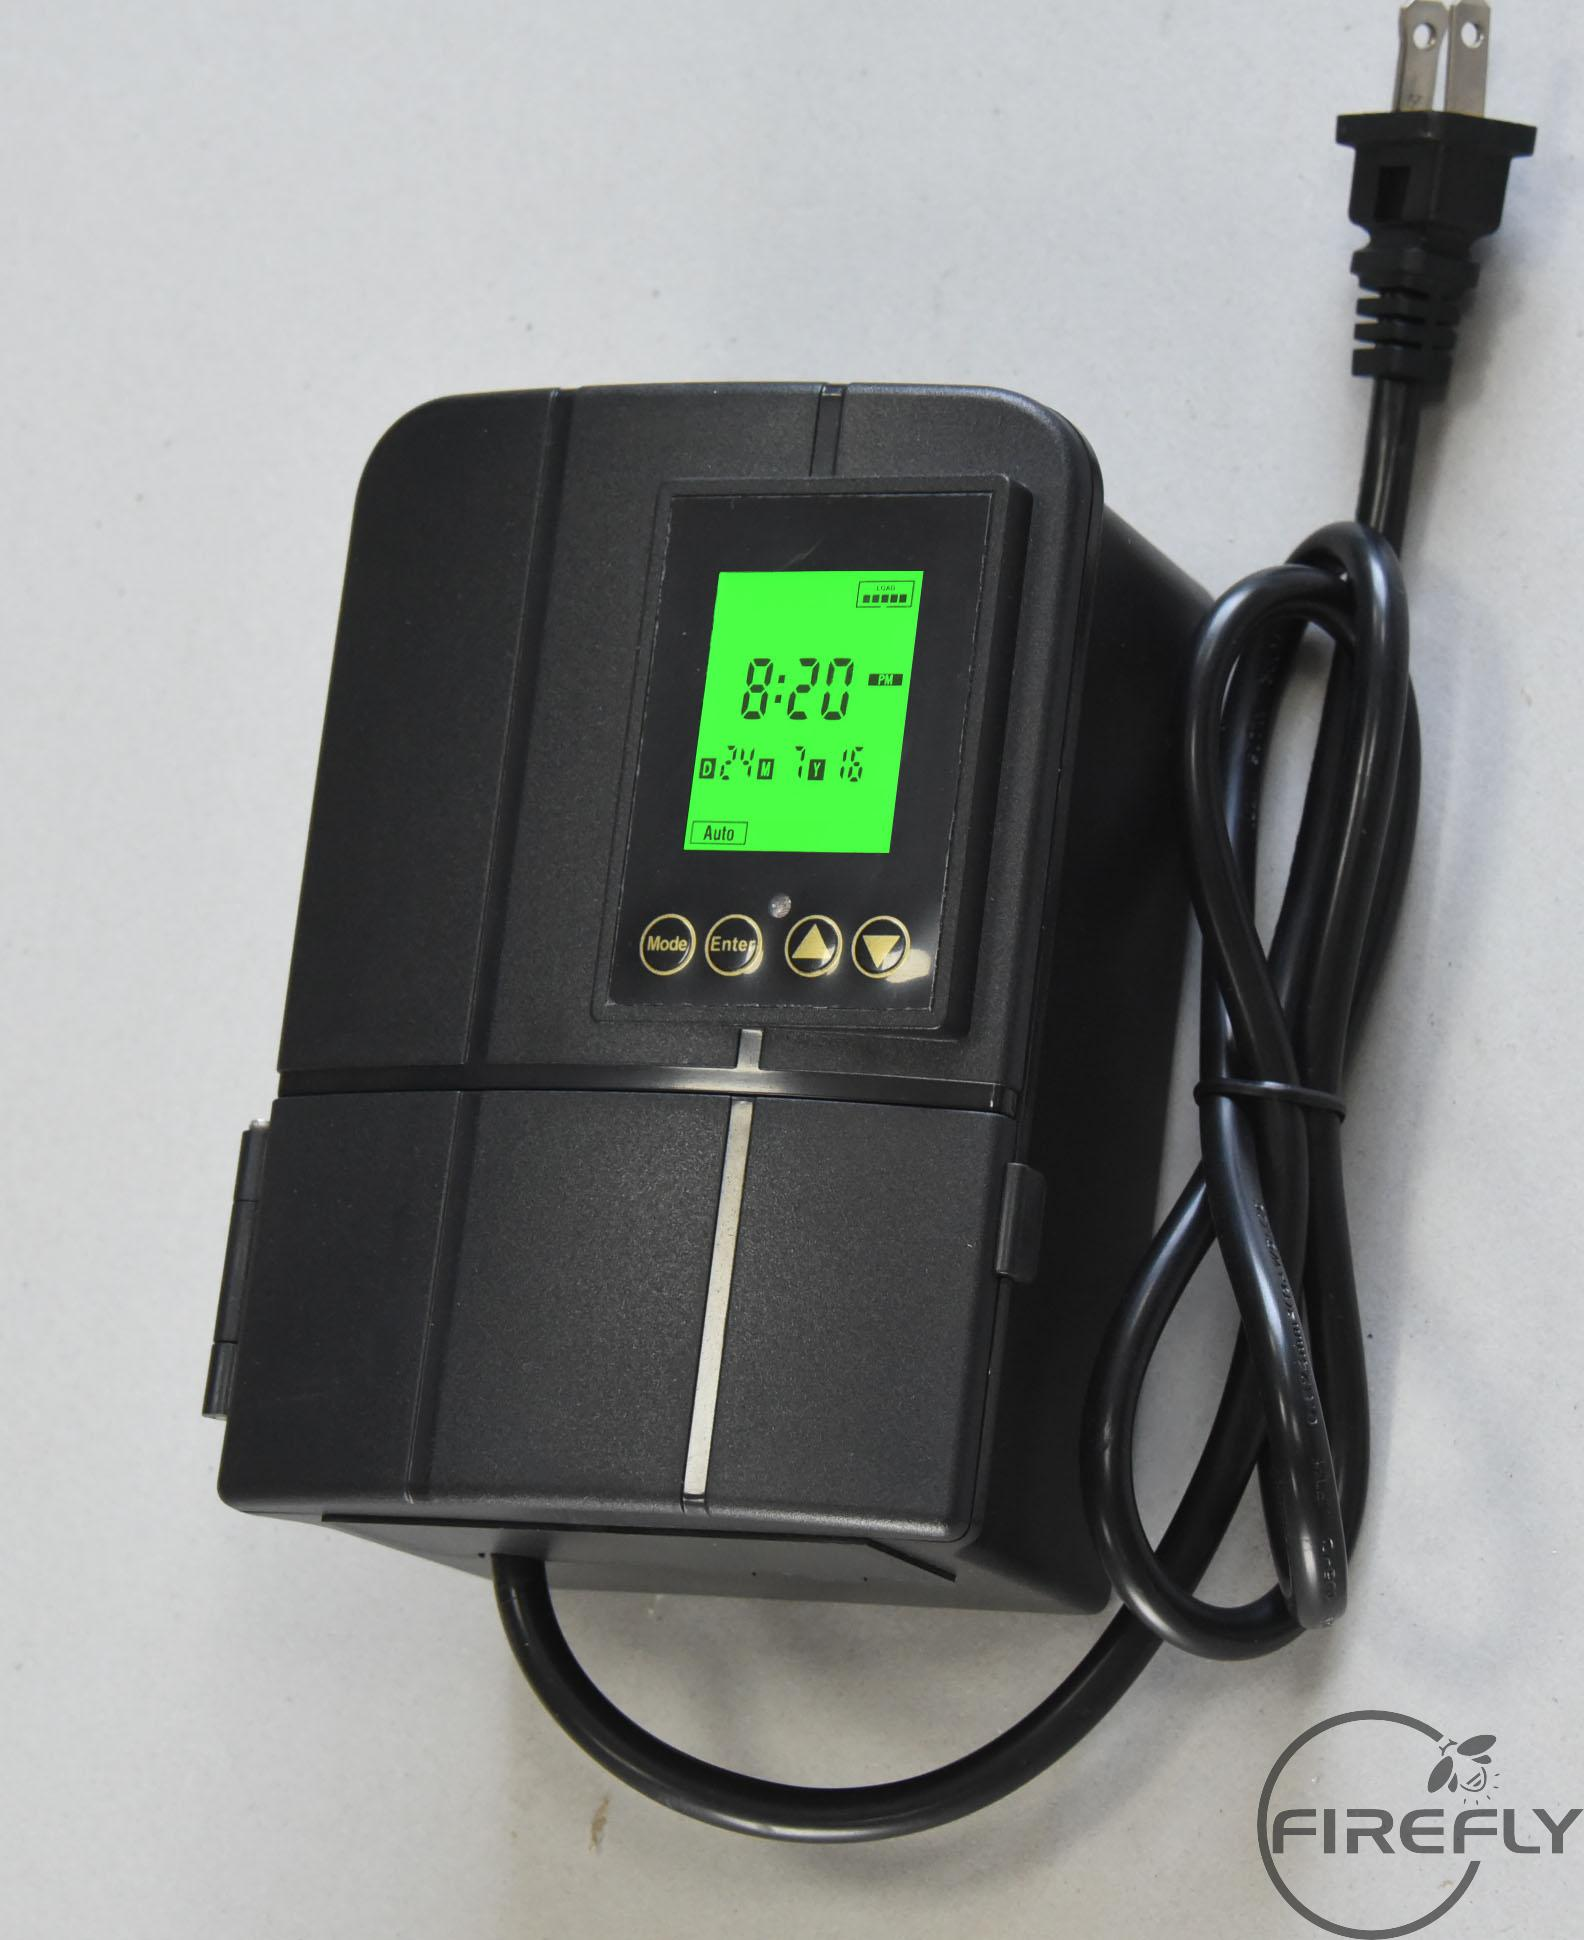 E000-1715 Dusk-to-Dawn Weatherproof Transformer for Outdoor Landscape Lighting with Astronomical Timer and A/C, 12V/120W